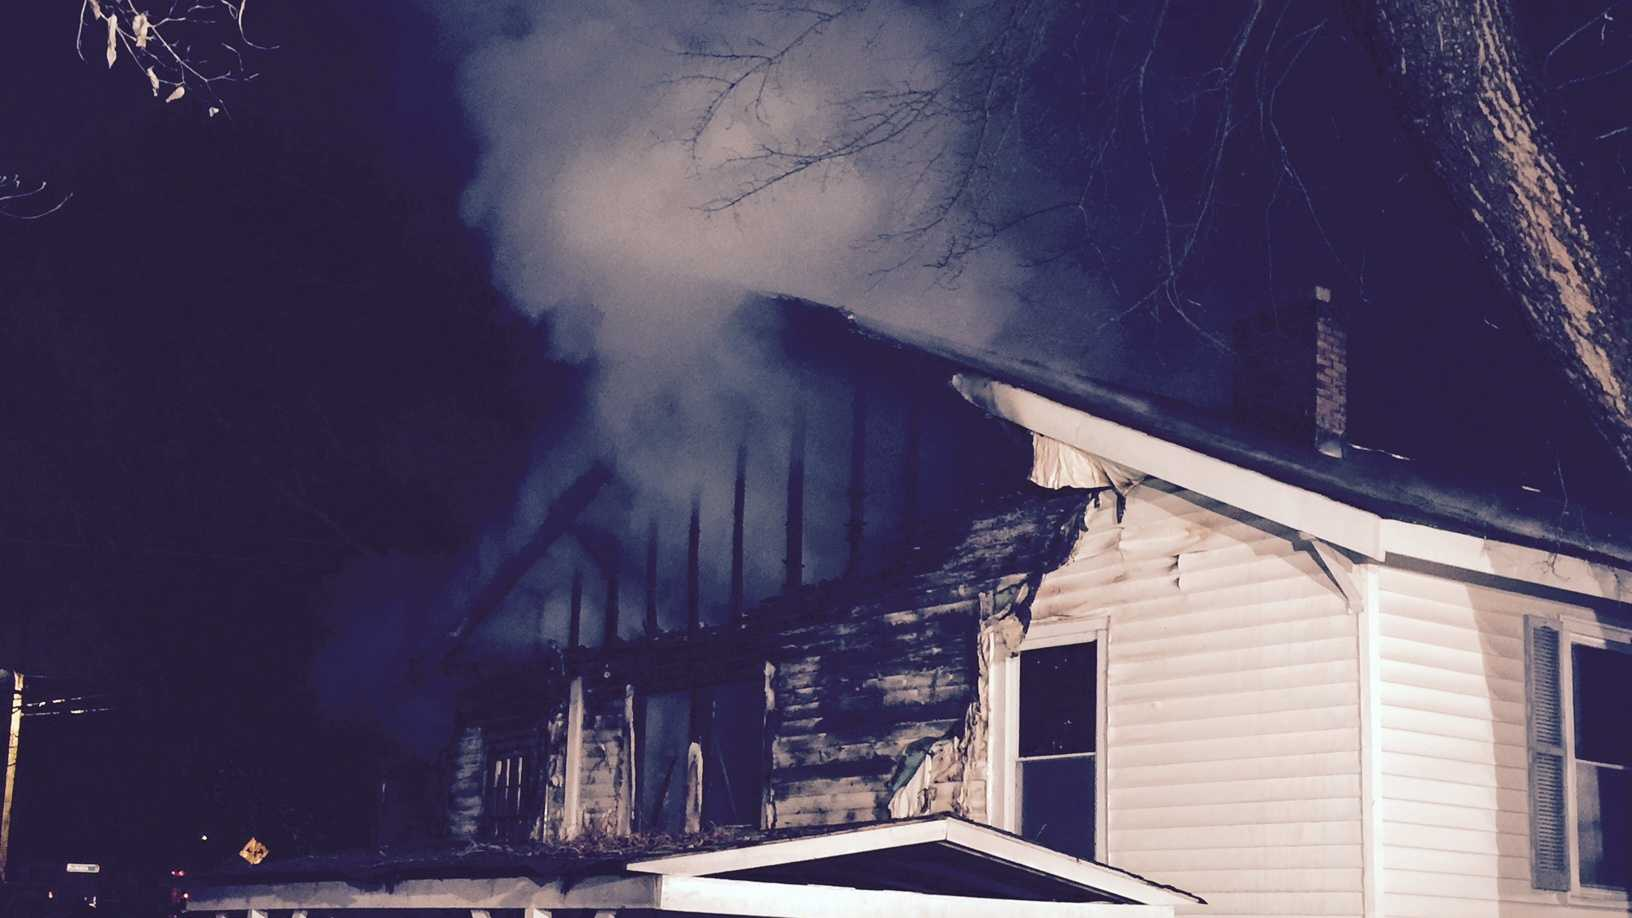 Fire investigators are looking into a fire that destroyed a home on Strickland Avenue.